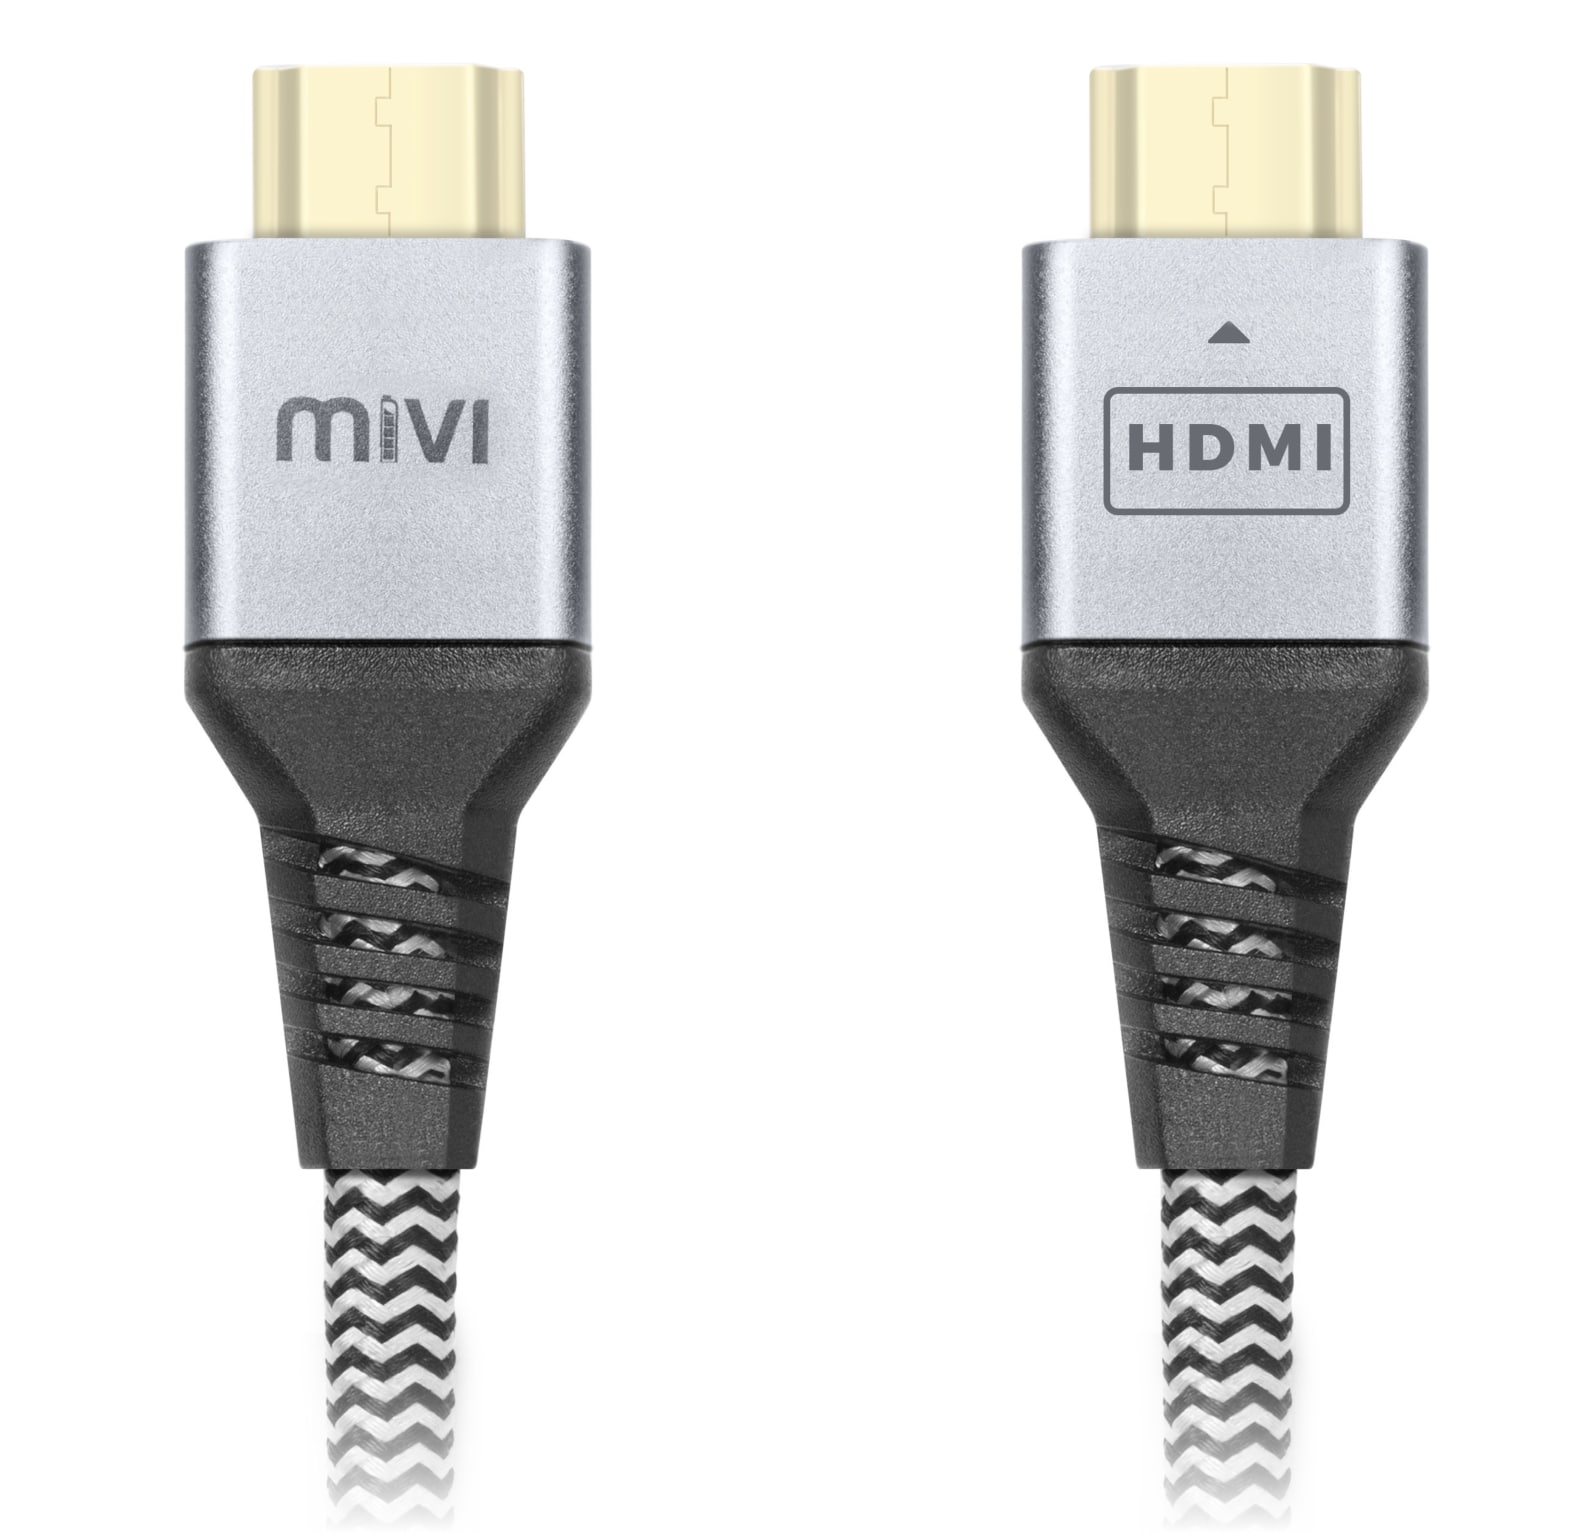 3 Meter Long High Speed Durable Tough Hdmi Cable Mivi Excellence Micro Usb Charger 2 Incredibly Metal Shell Casing